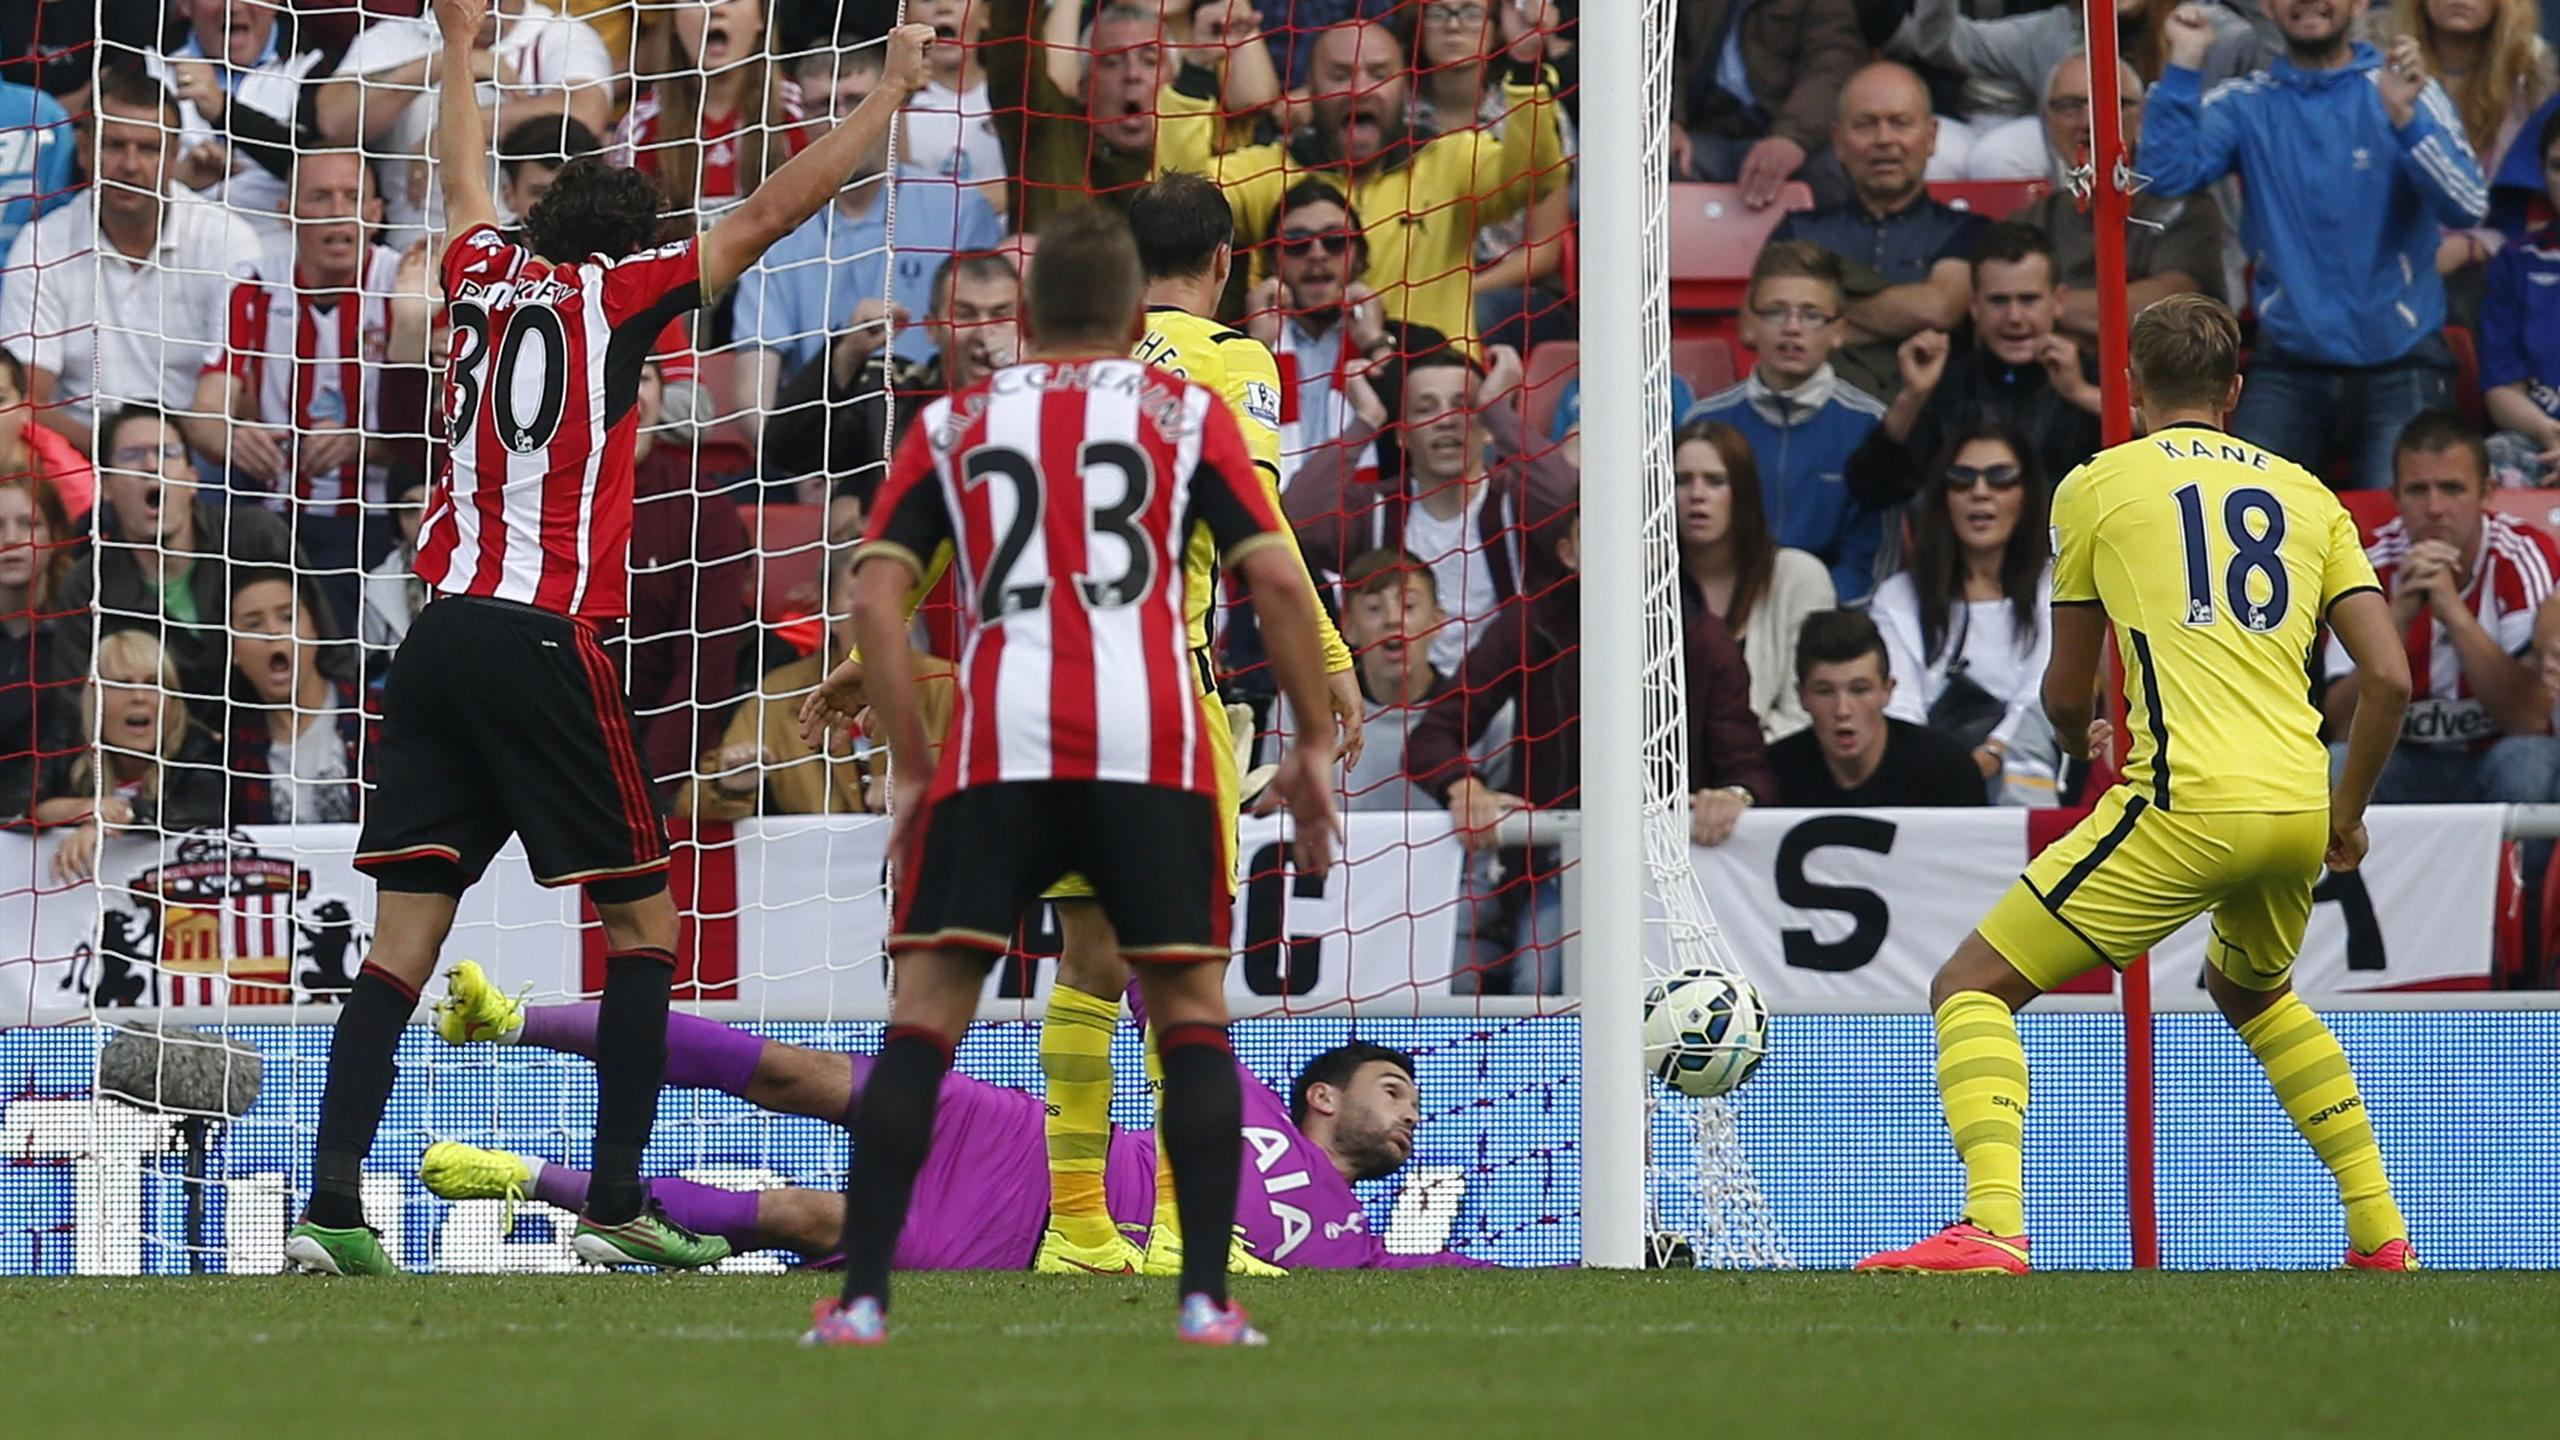 Video: Sunderland vs Tottenham Hotspur